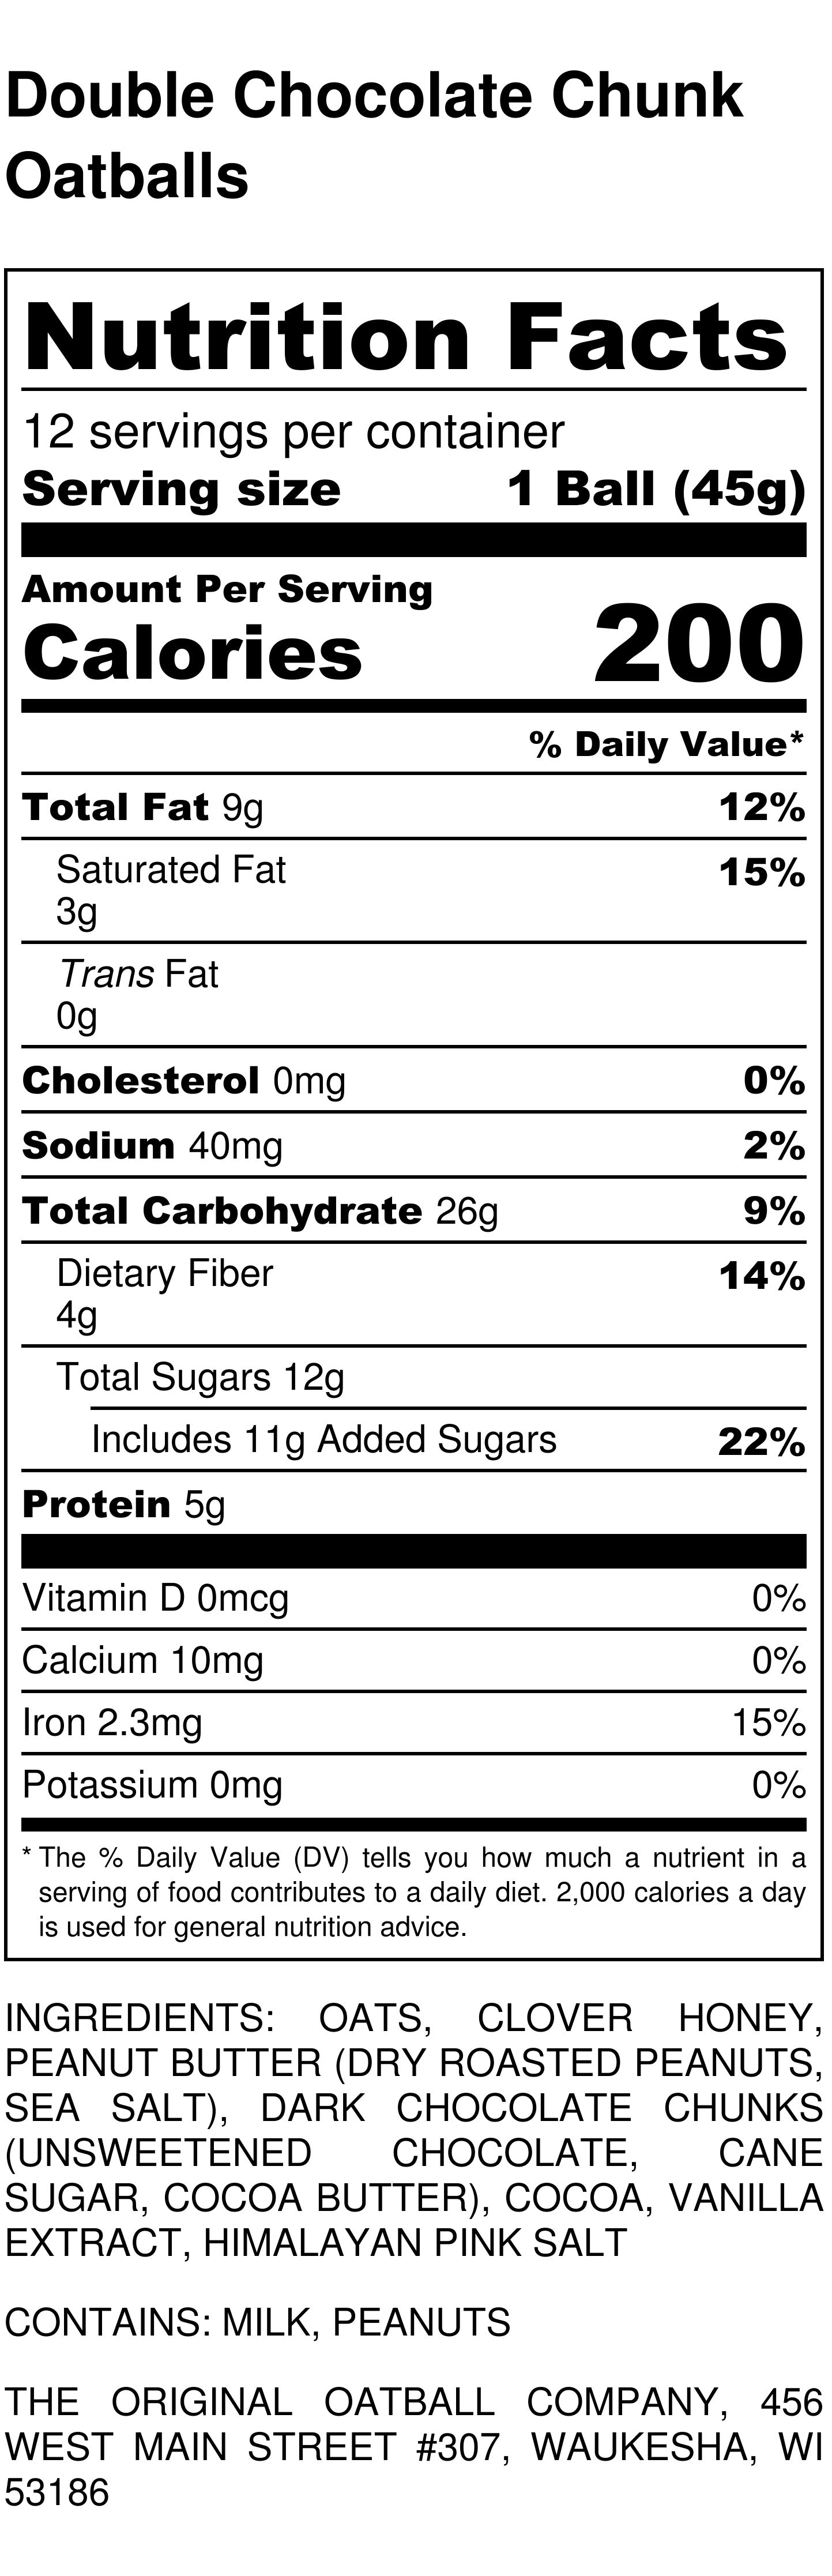 Double Chocolate Chunk Oatballs Nutrition Label